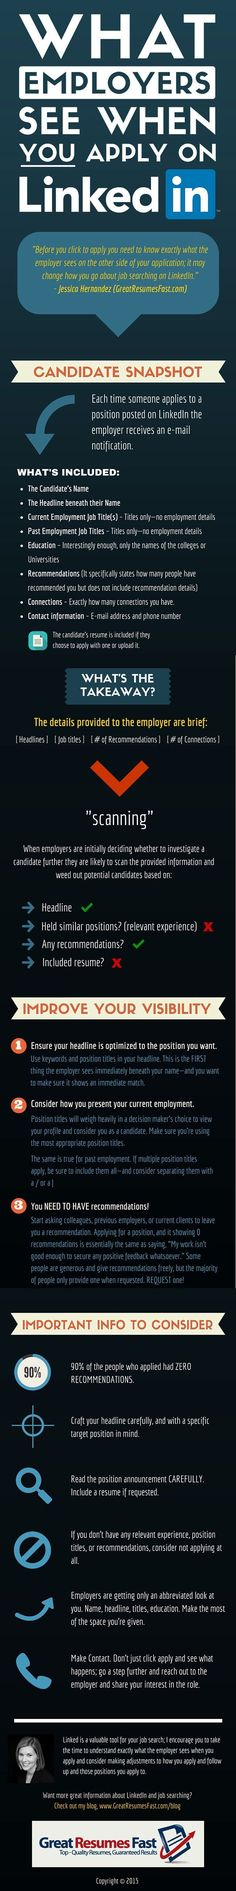 What Employers See When You Apply on LinkedIn | Great Resumes Fast | Jessica Holbrook Hernandez | www.greatresumesf...